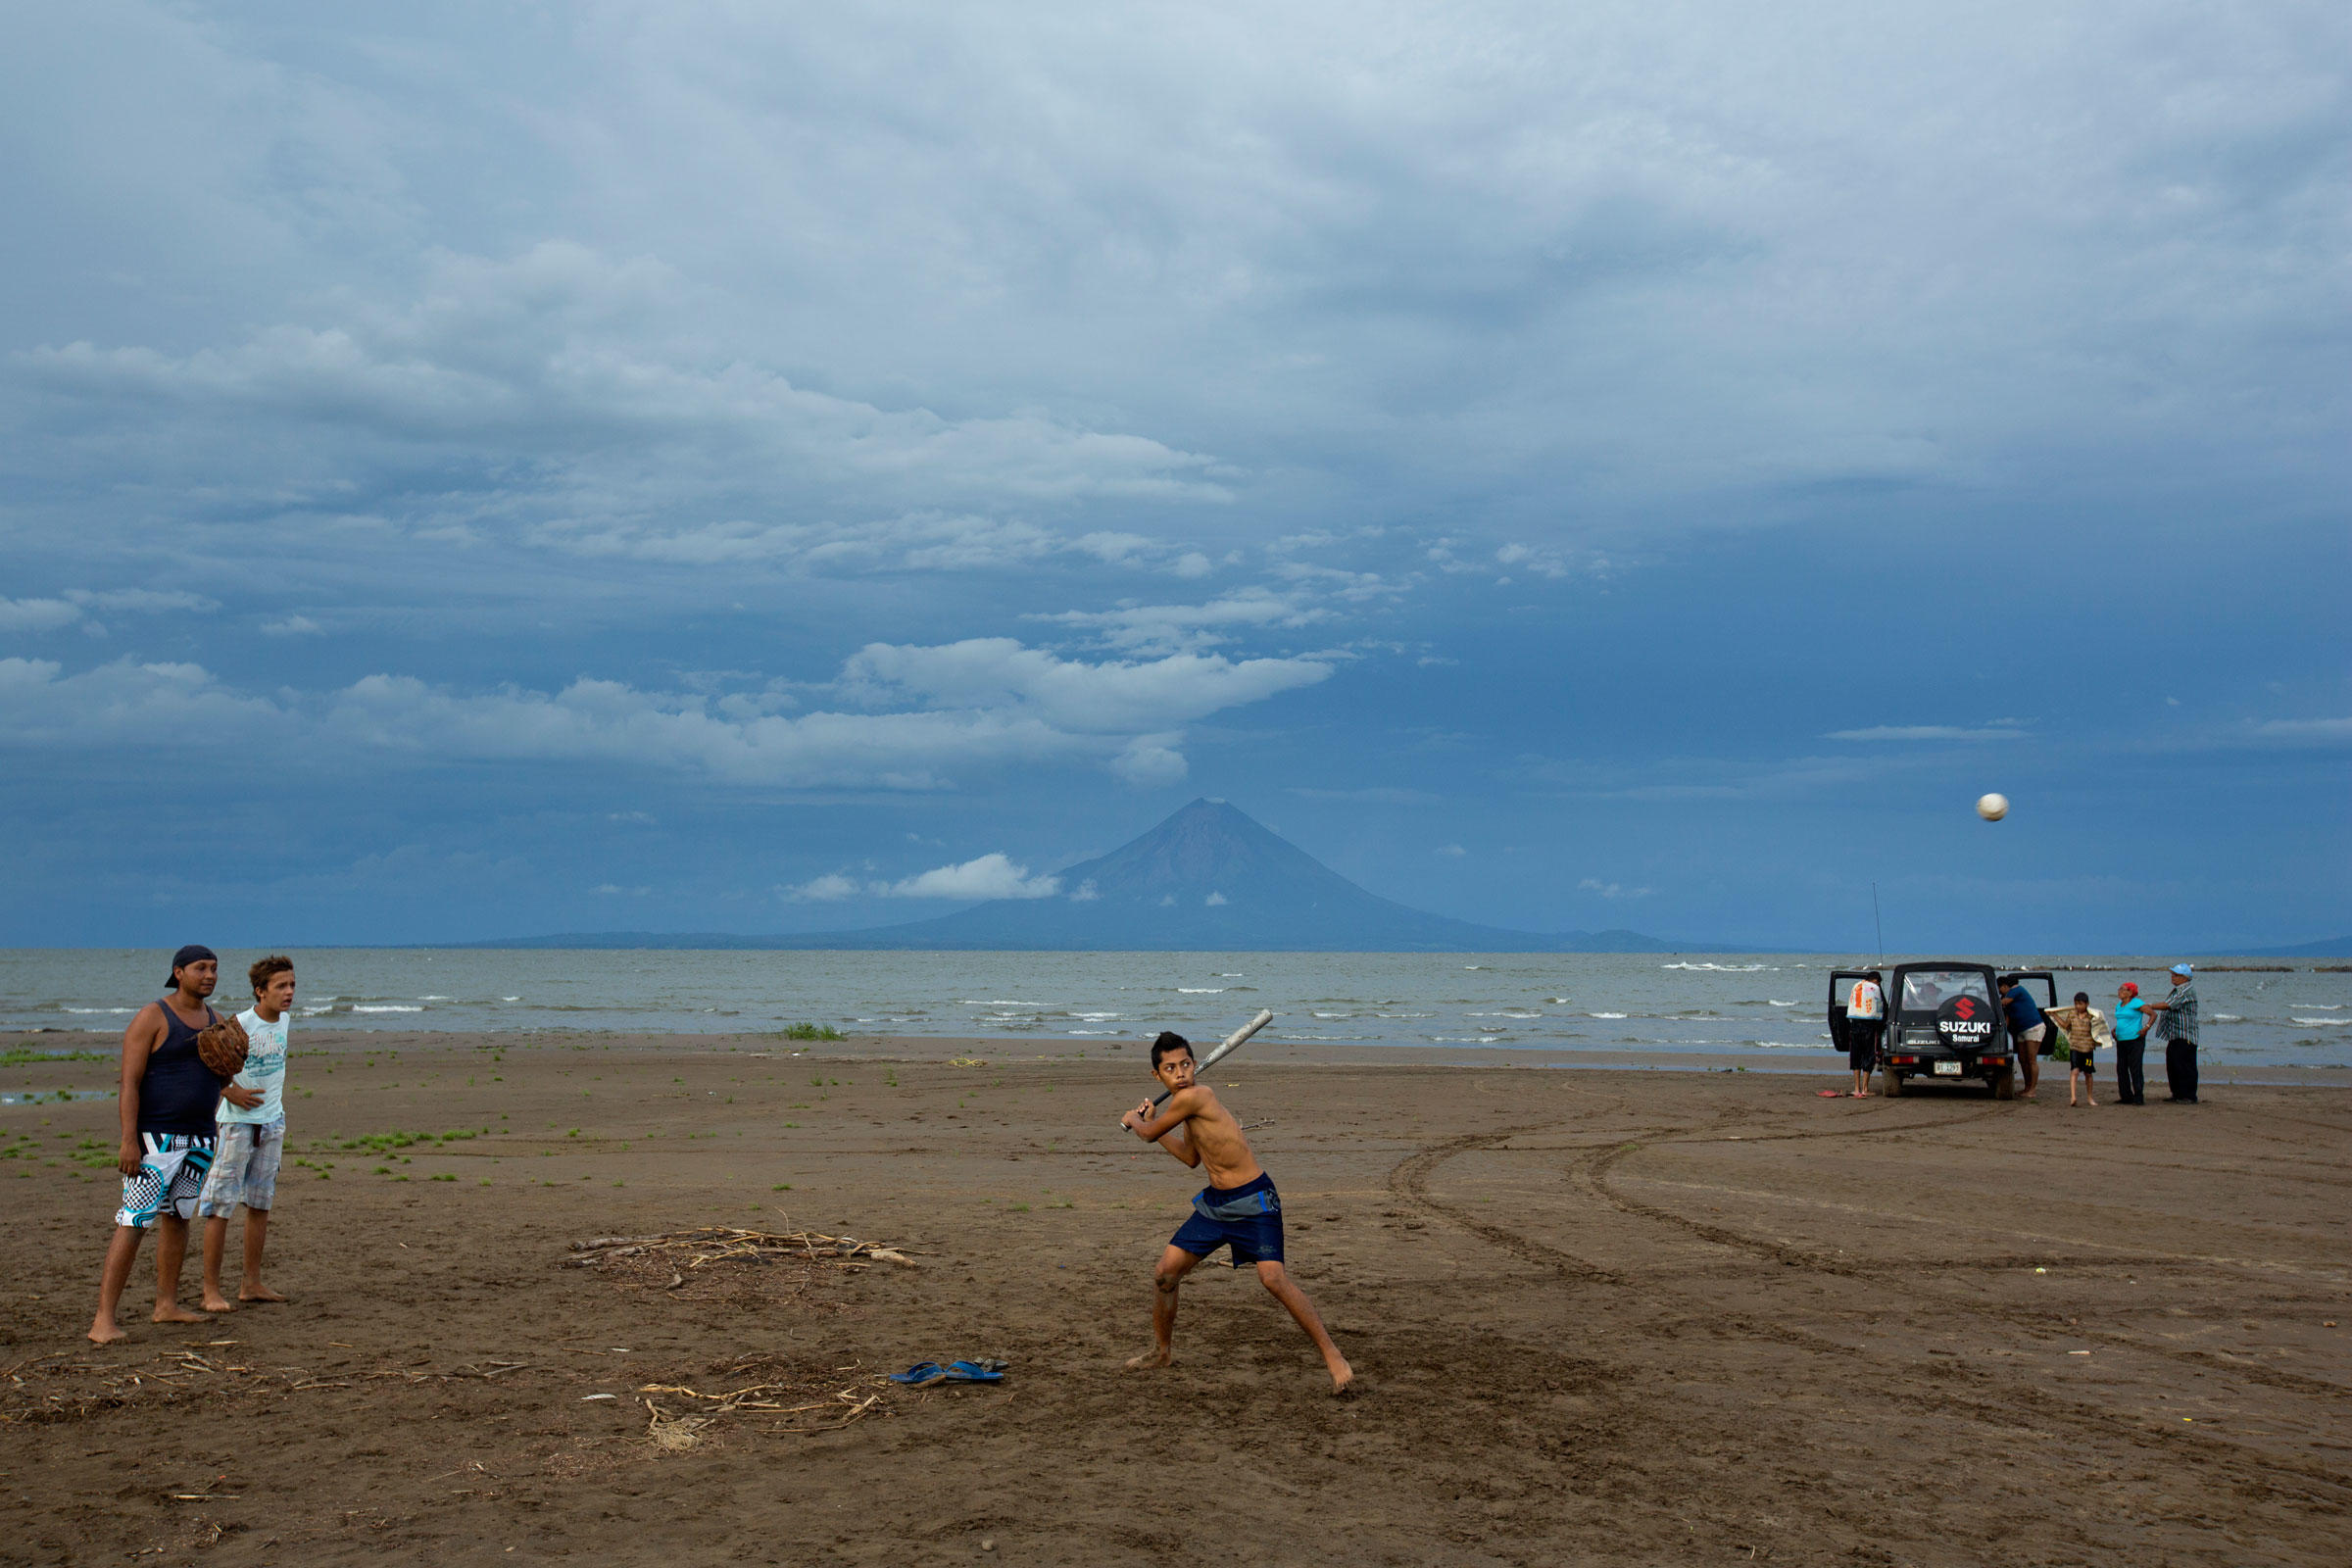 Boys from the town of Los Cocos, on the western side of Lake Nicaragua, play baseball on Playa la Virgen, which will be destroyed by the canal. Ivan Kashinsky